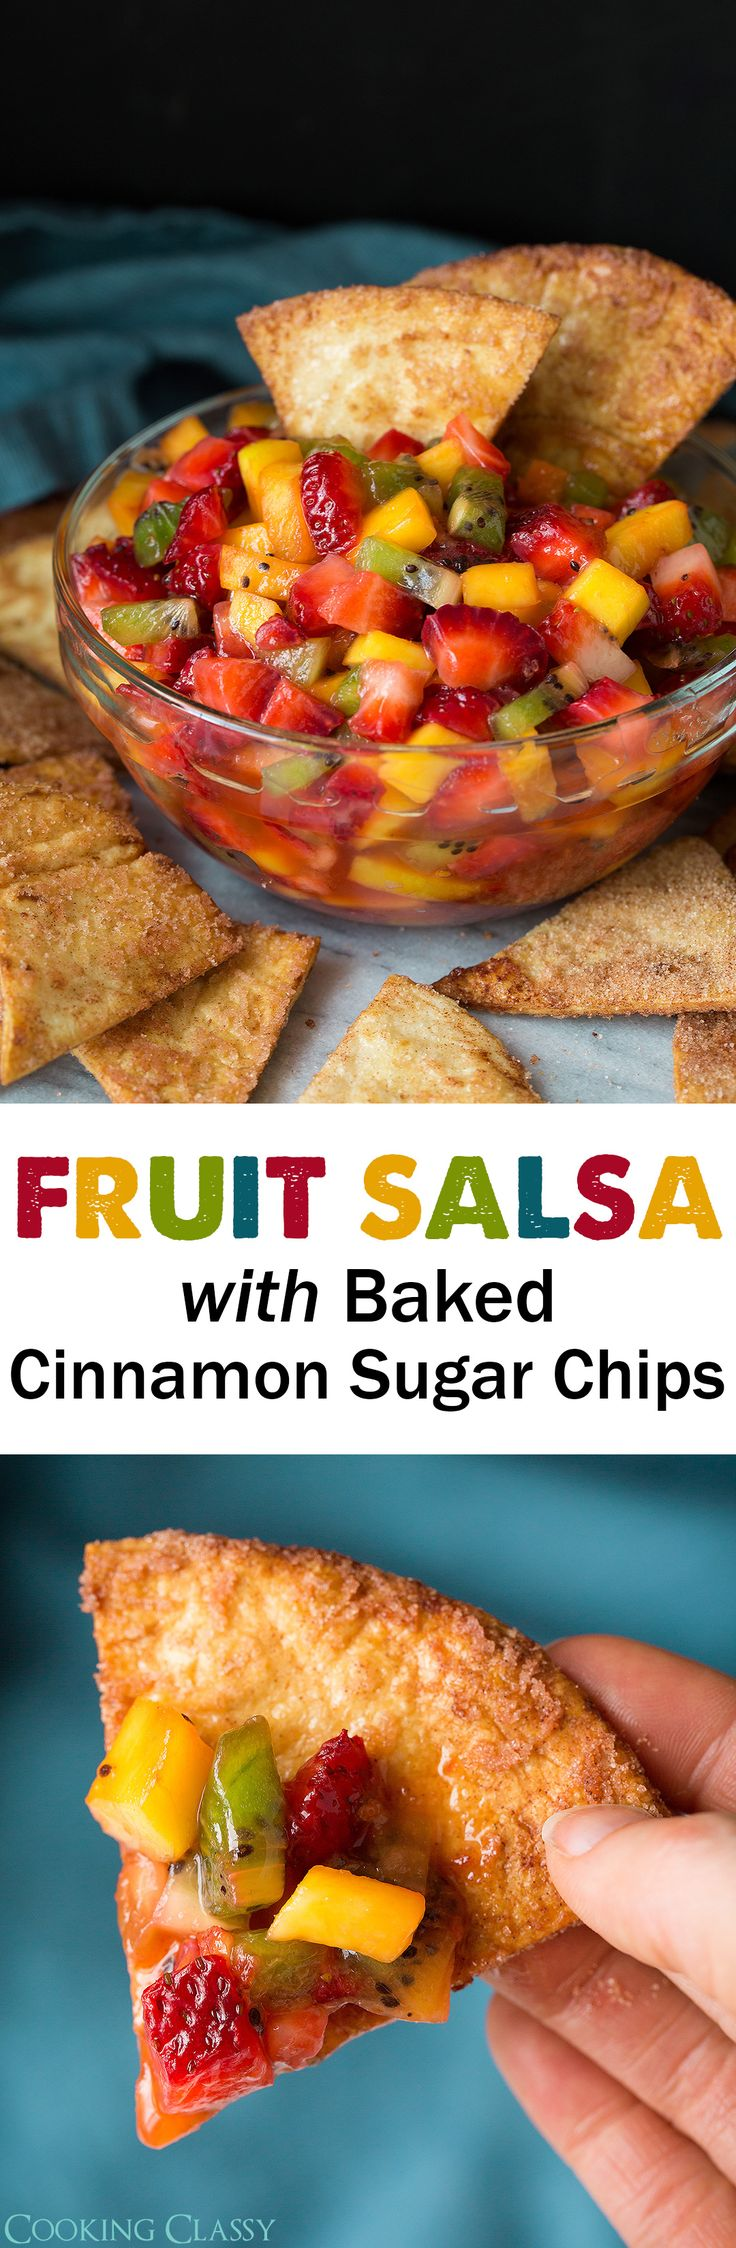 Fruit Salsa with Baked Cinnamon Sugar Chips